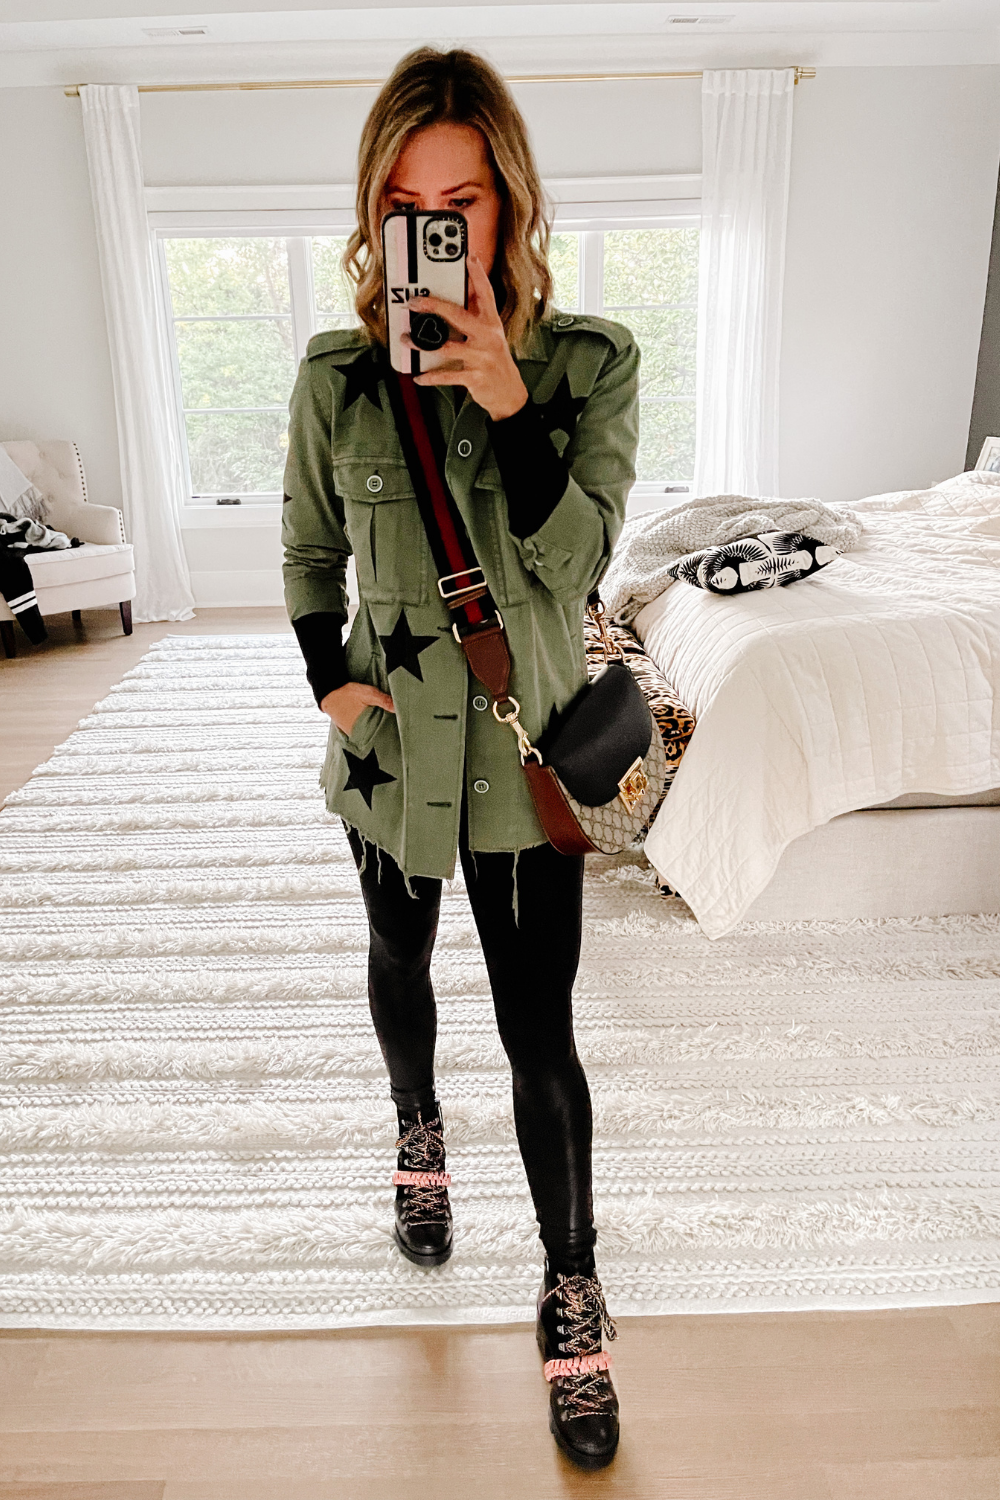 #ootd, army jacket, faux leather leggings and combat boots